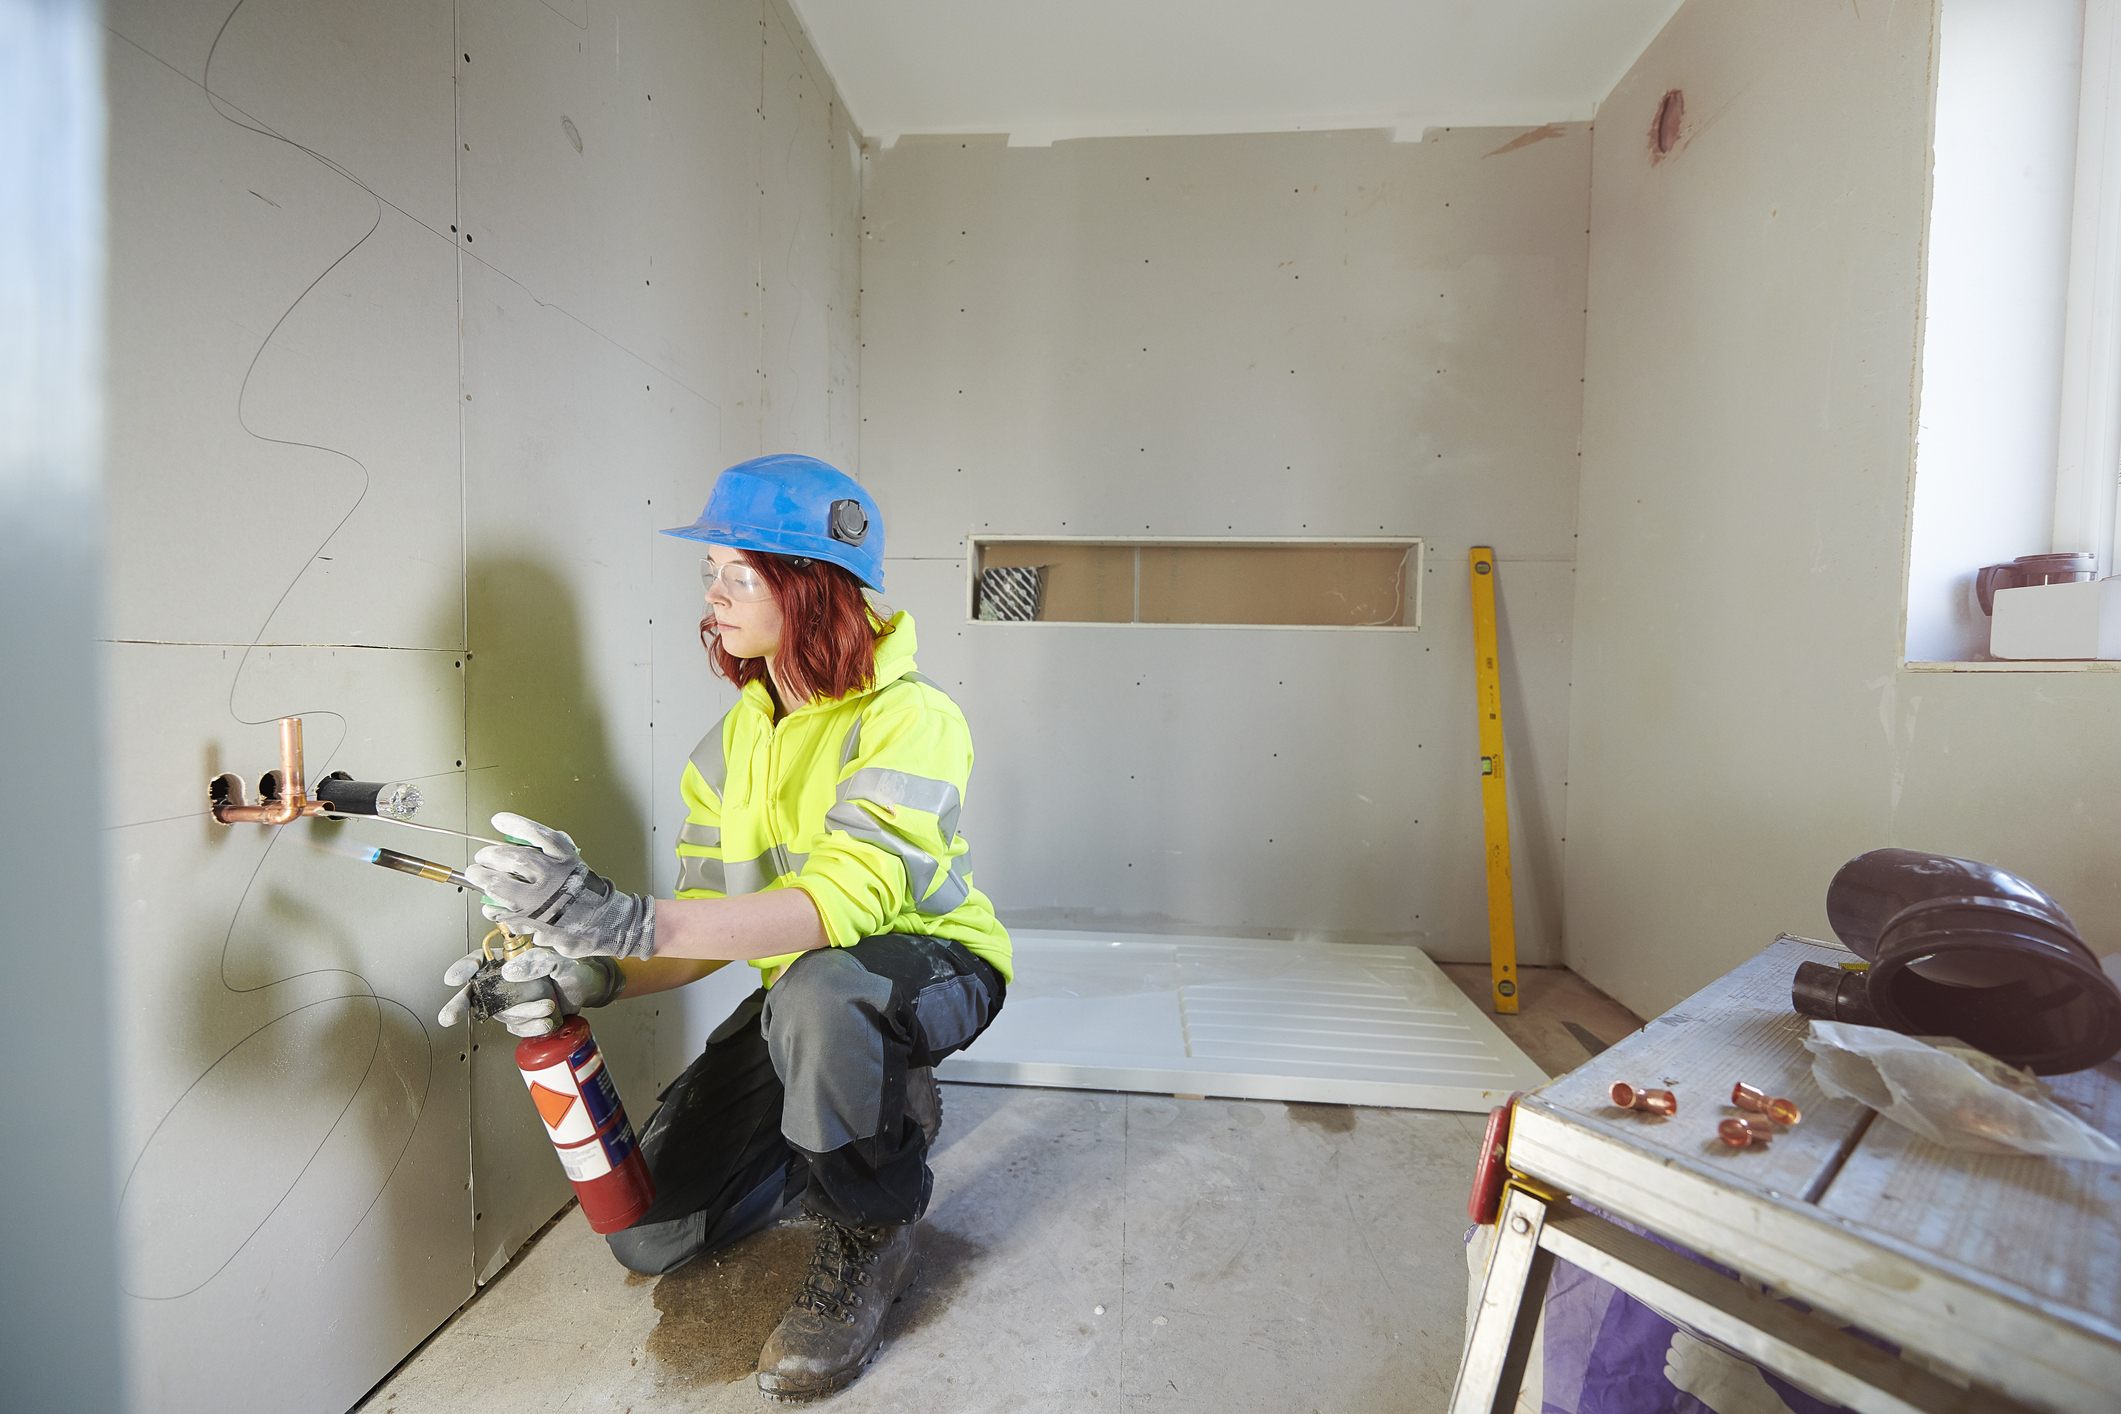 Woman installing plumbing and electrical conduits during renovation.